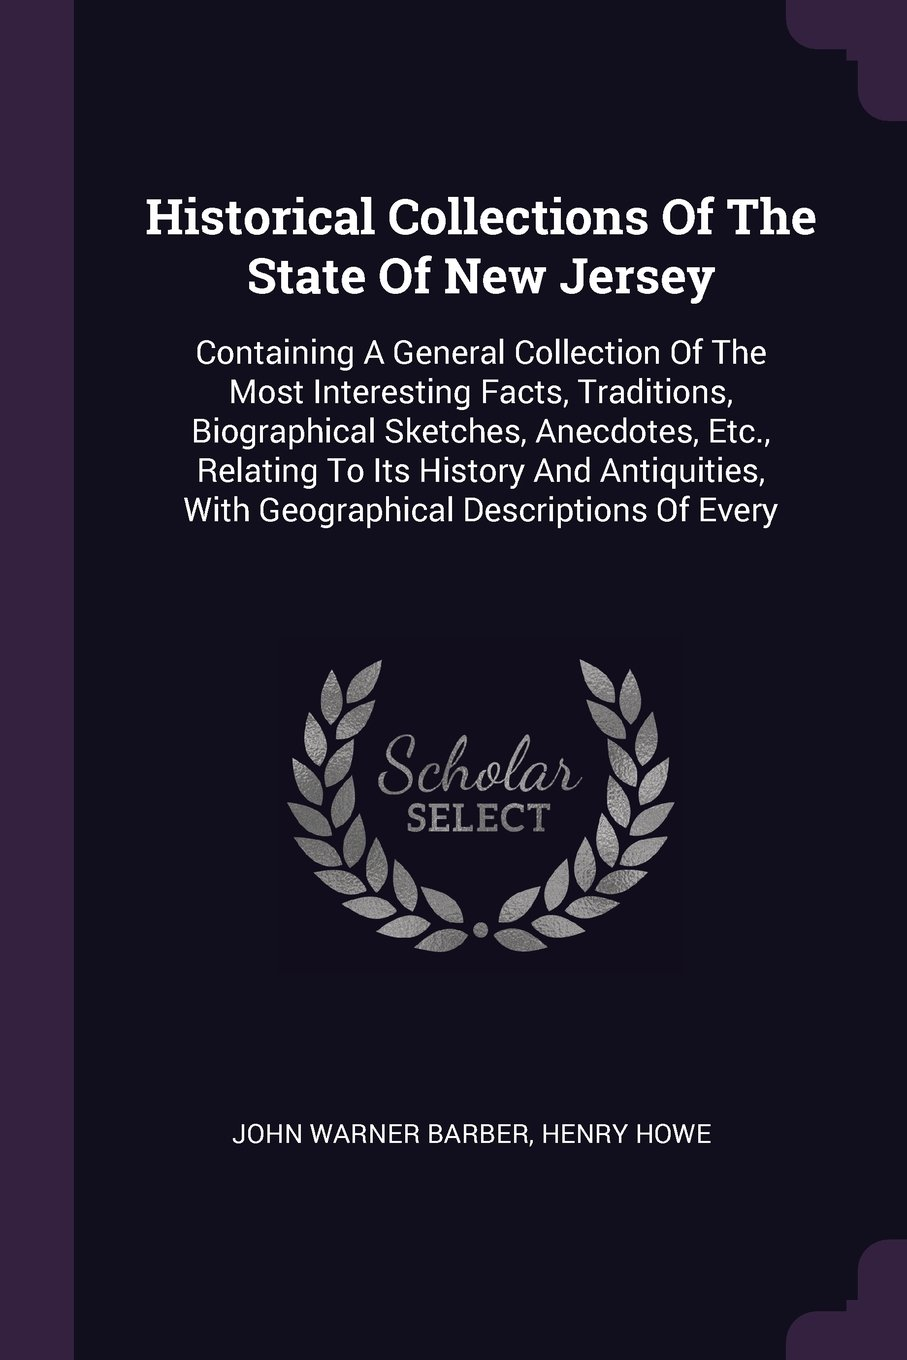 Historical Collections Of The State Of New Jersey: Containing A General Collection Of The Most Interesting Facts, Traditions, Biographical Sketches, ... With Geographical Descriptions Of Every pdf epub